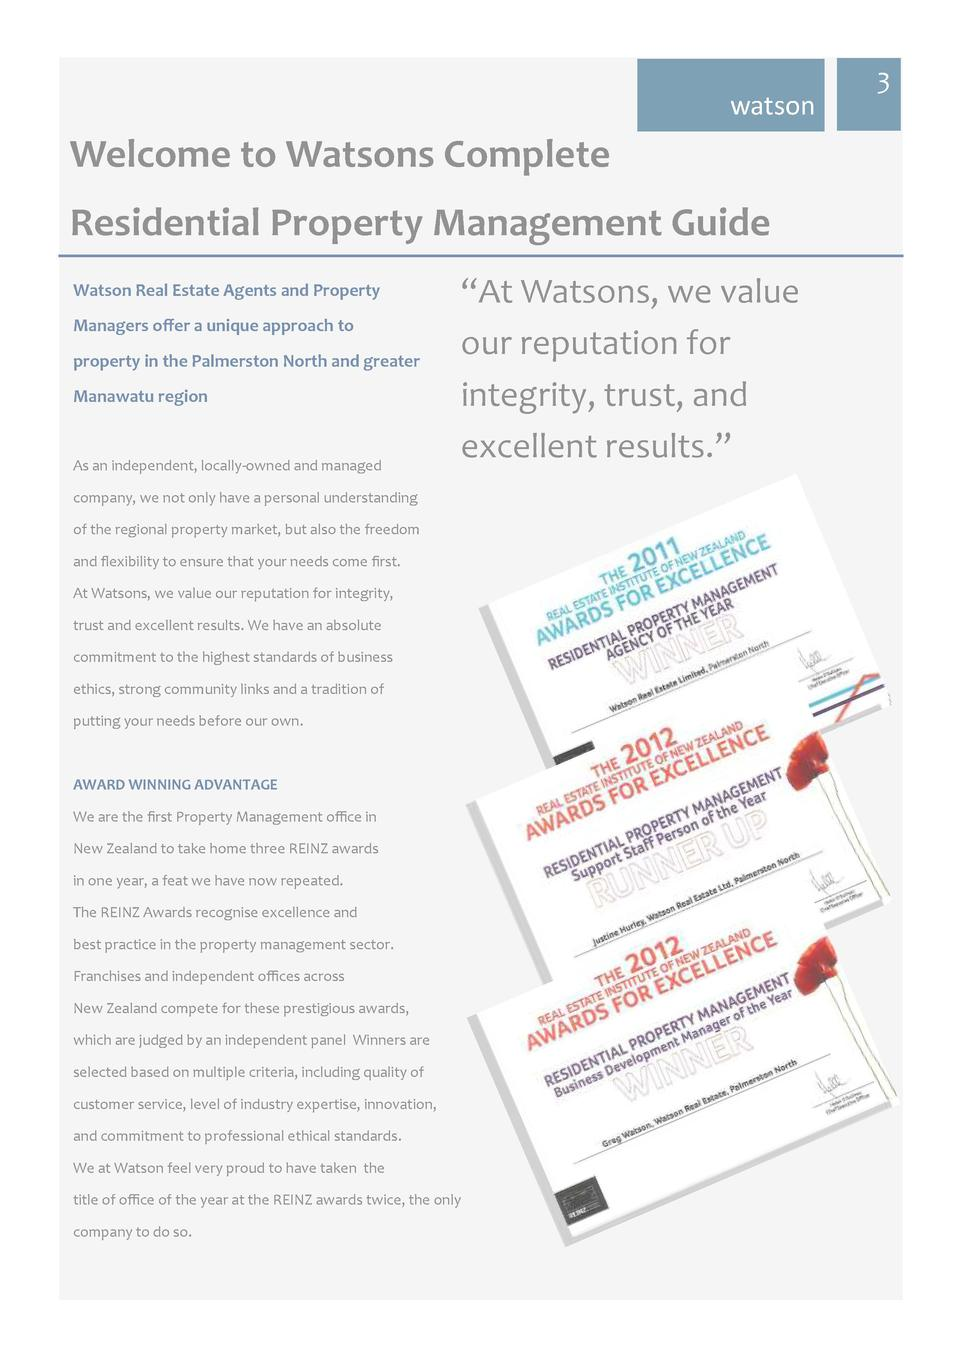 watson  Welcome to Watsons Complete Residential Property Management Guide Watson Real Estate Agents and Property Managers ...